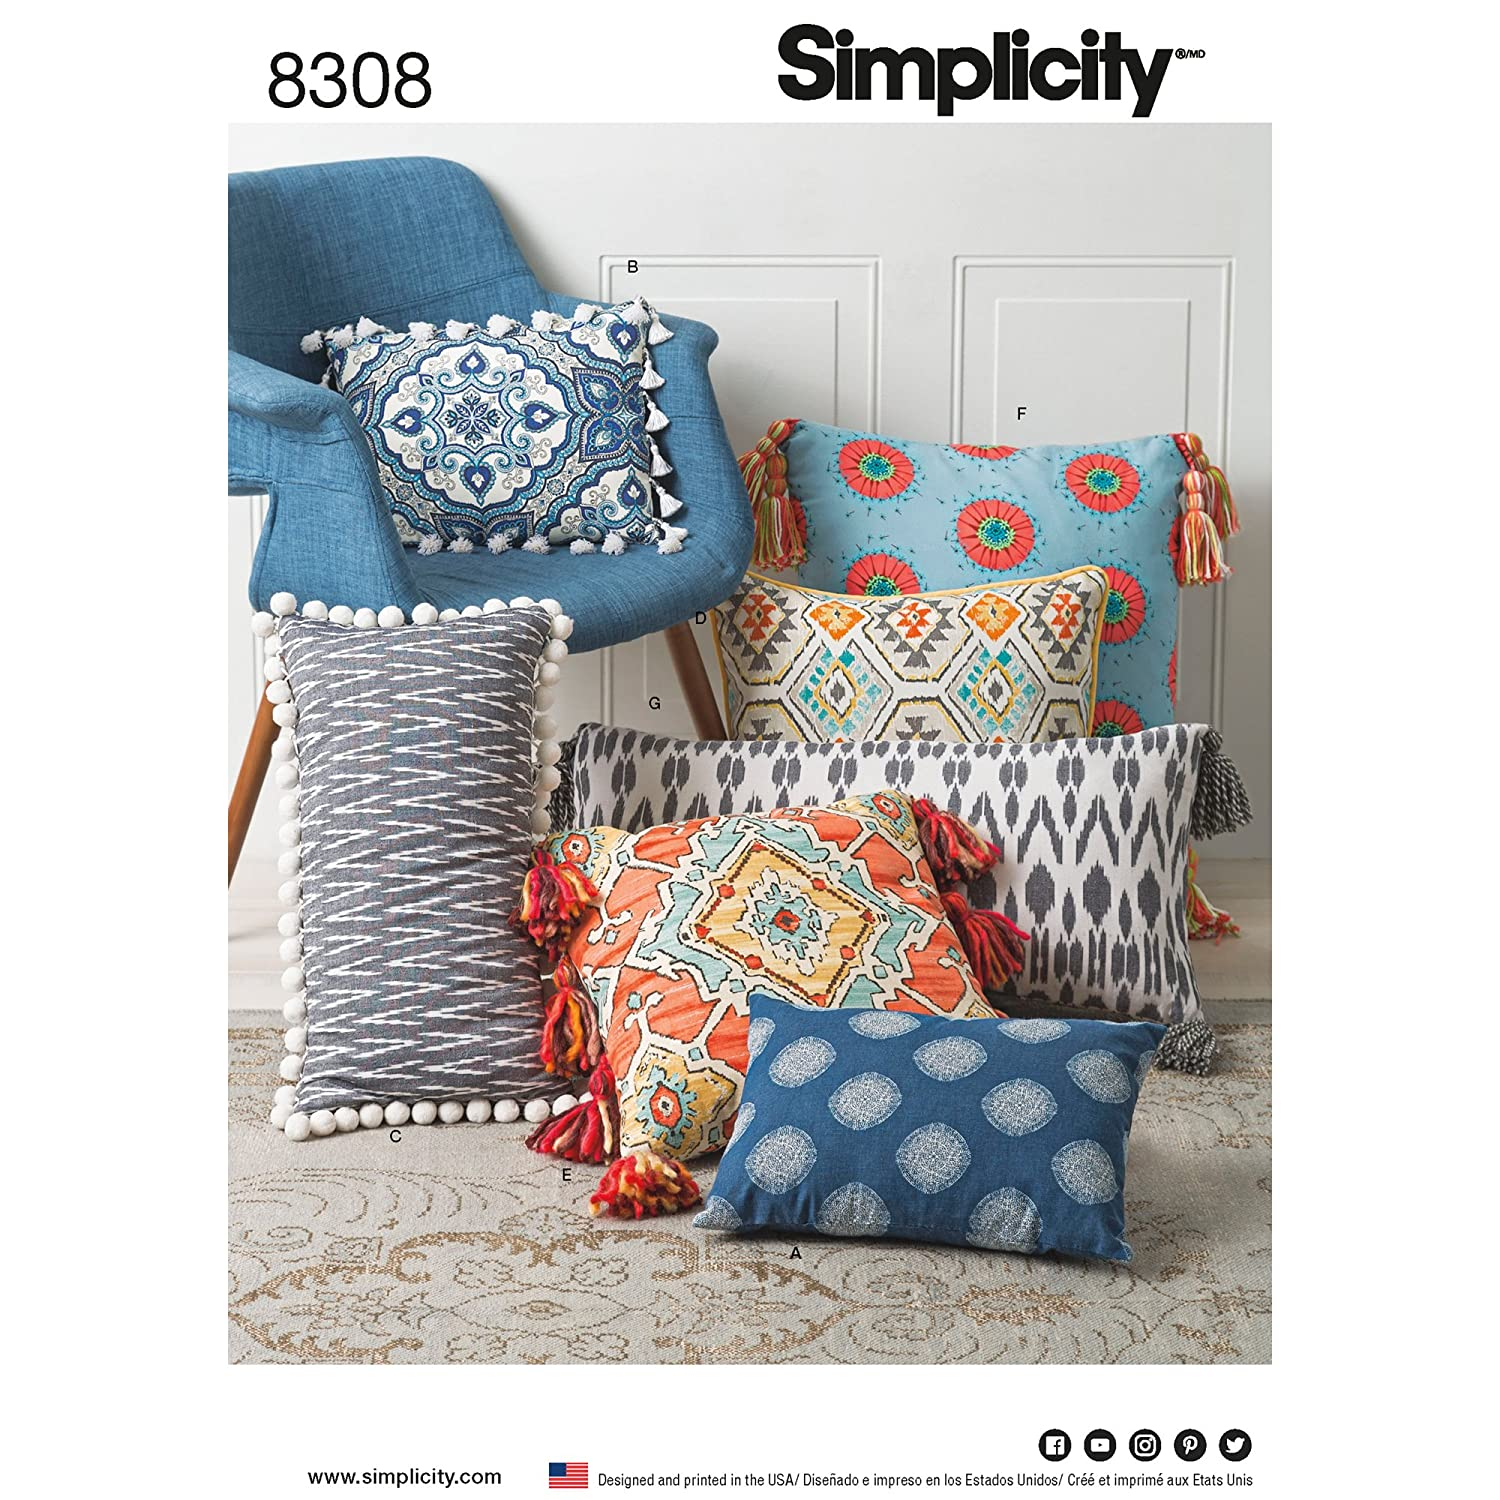 ONE Size Paper White 22 x 15 x 1 cm Pillows Simplicity Pattern 8308 OS